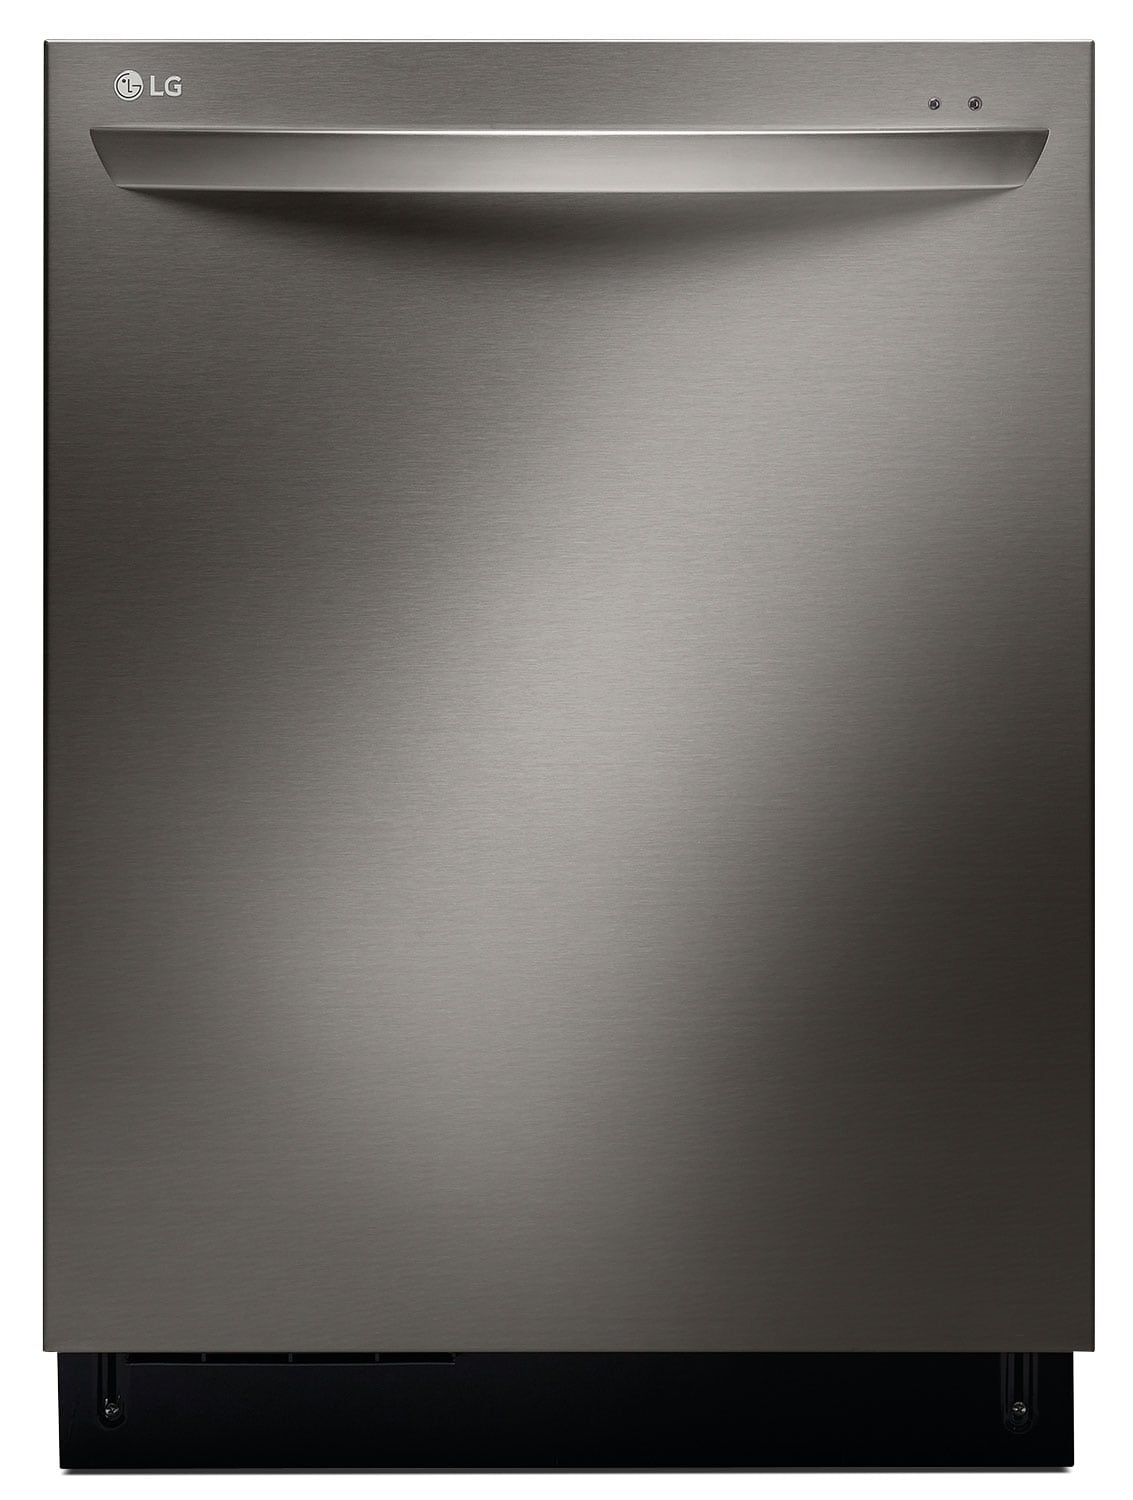 "LG Appliances Black Stainless Steel 24"" Dishwasher - LDF7774BD"